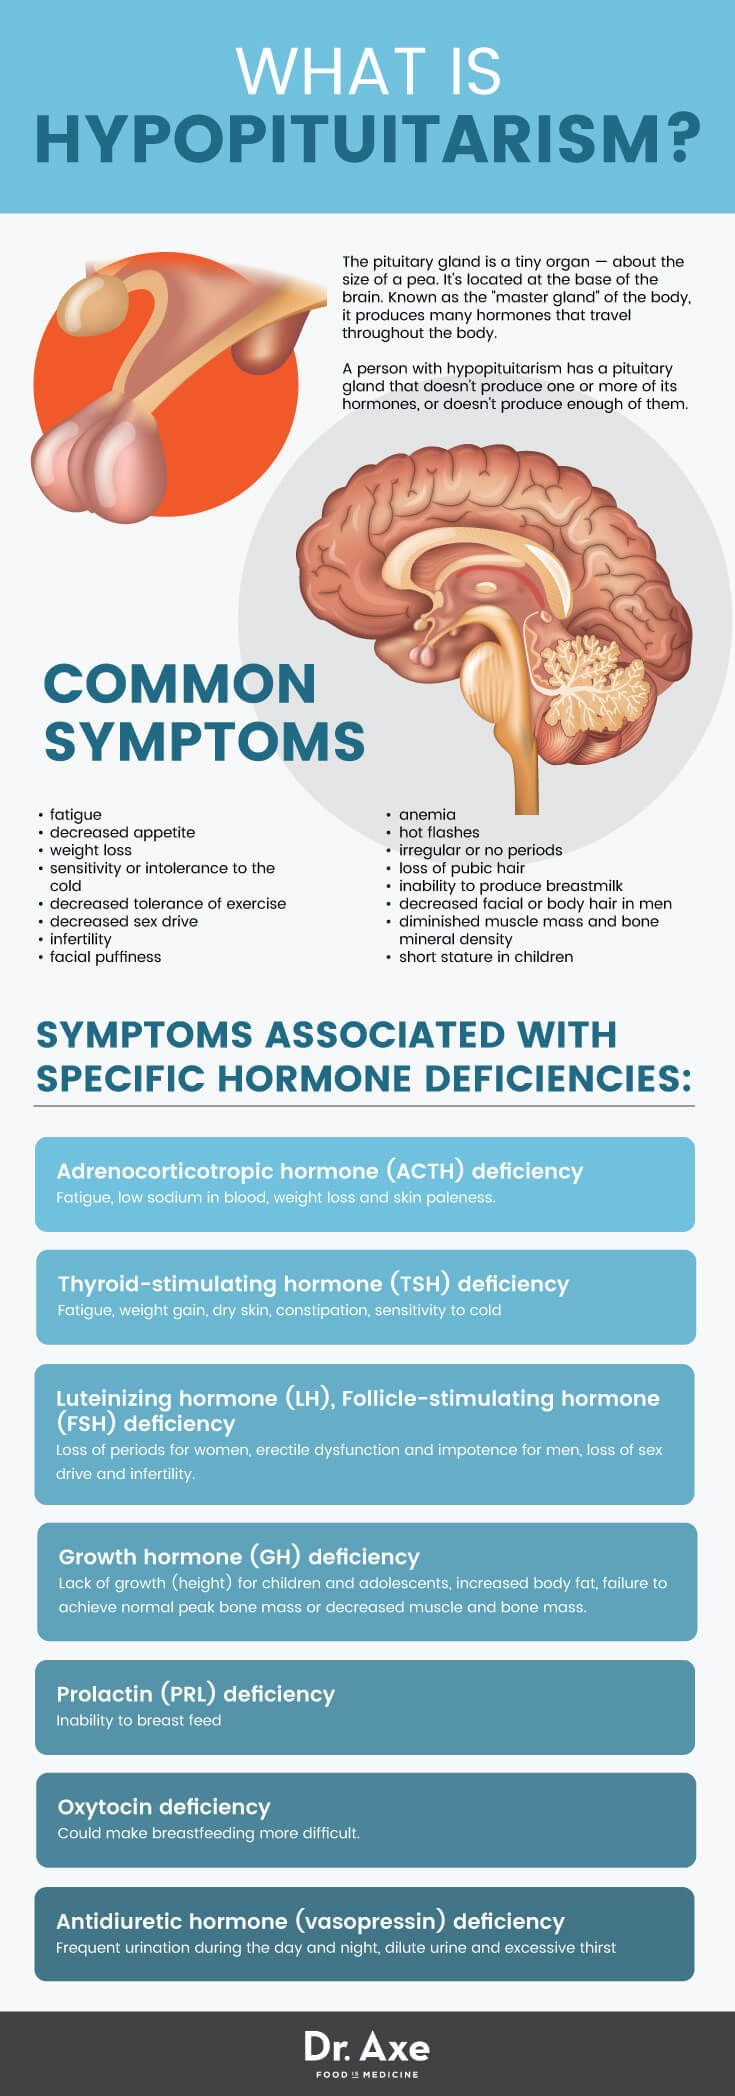 Signs & Symptoms of a Rare Pituitary Condition | Pituitary ...